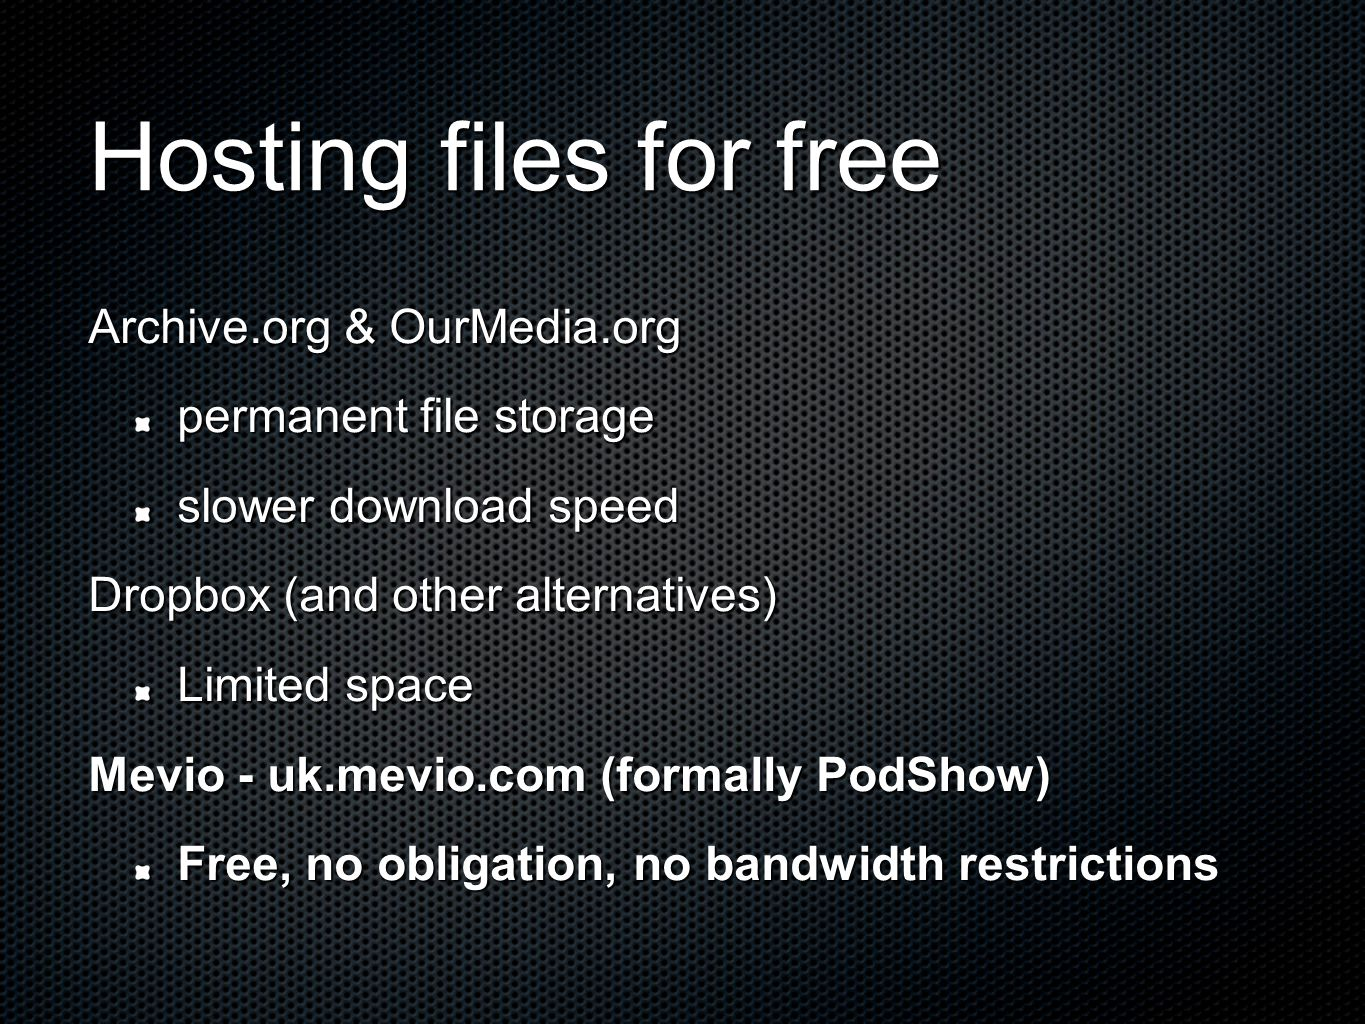 Hosting files for free Archive.org & OurMedia.org permanent file storage slower download speed Dropbox (and other alternatives) Limited space Mevio - uk.mevio.com (formally PodShow) Free, no obligation, no bandwidth restrictions